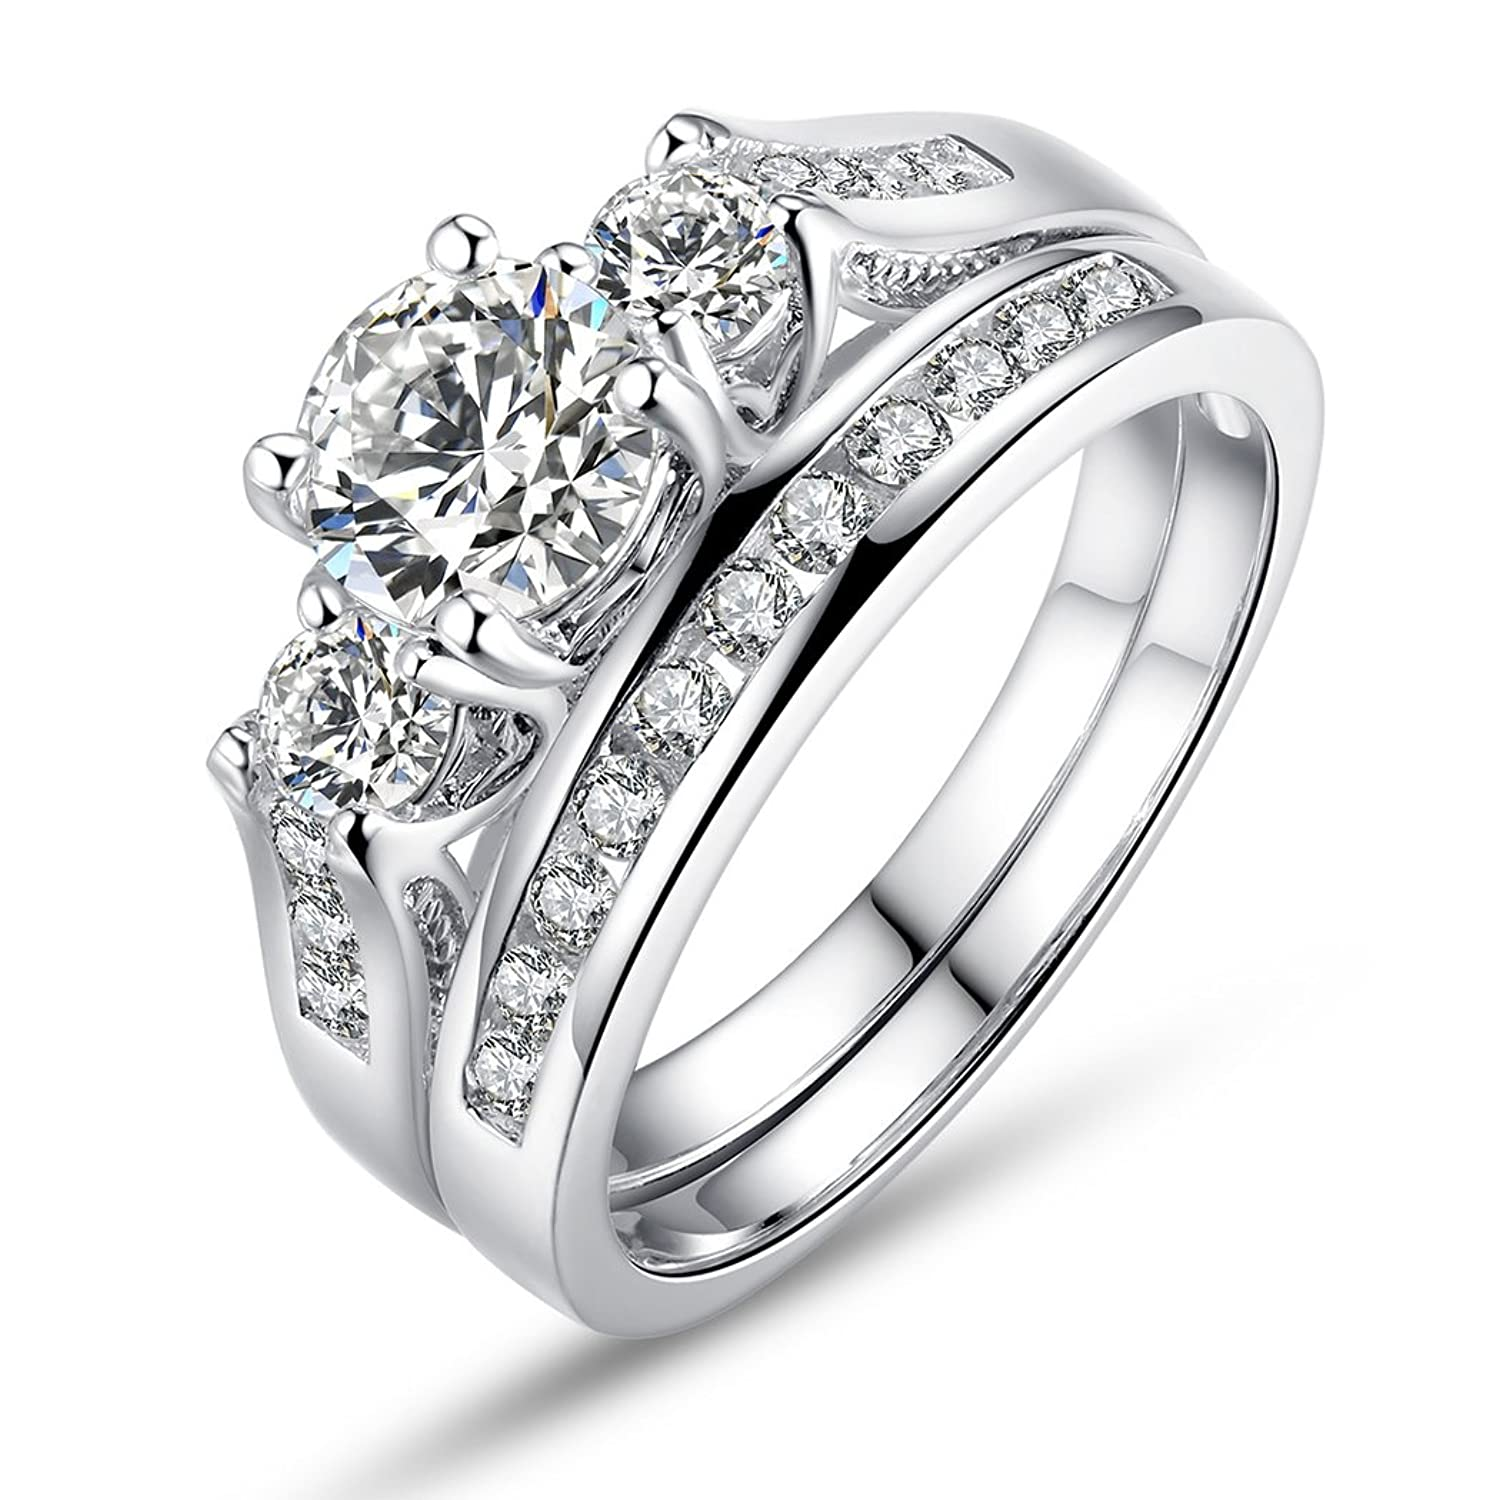 cushion double halo itm ring engagement wedding gold trio rings diamond white set ct